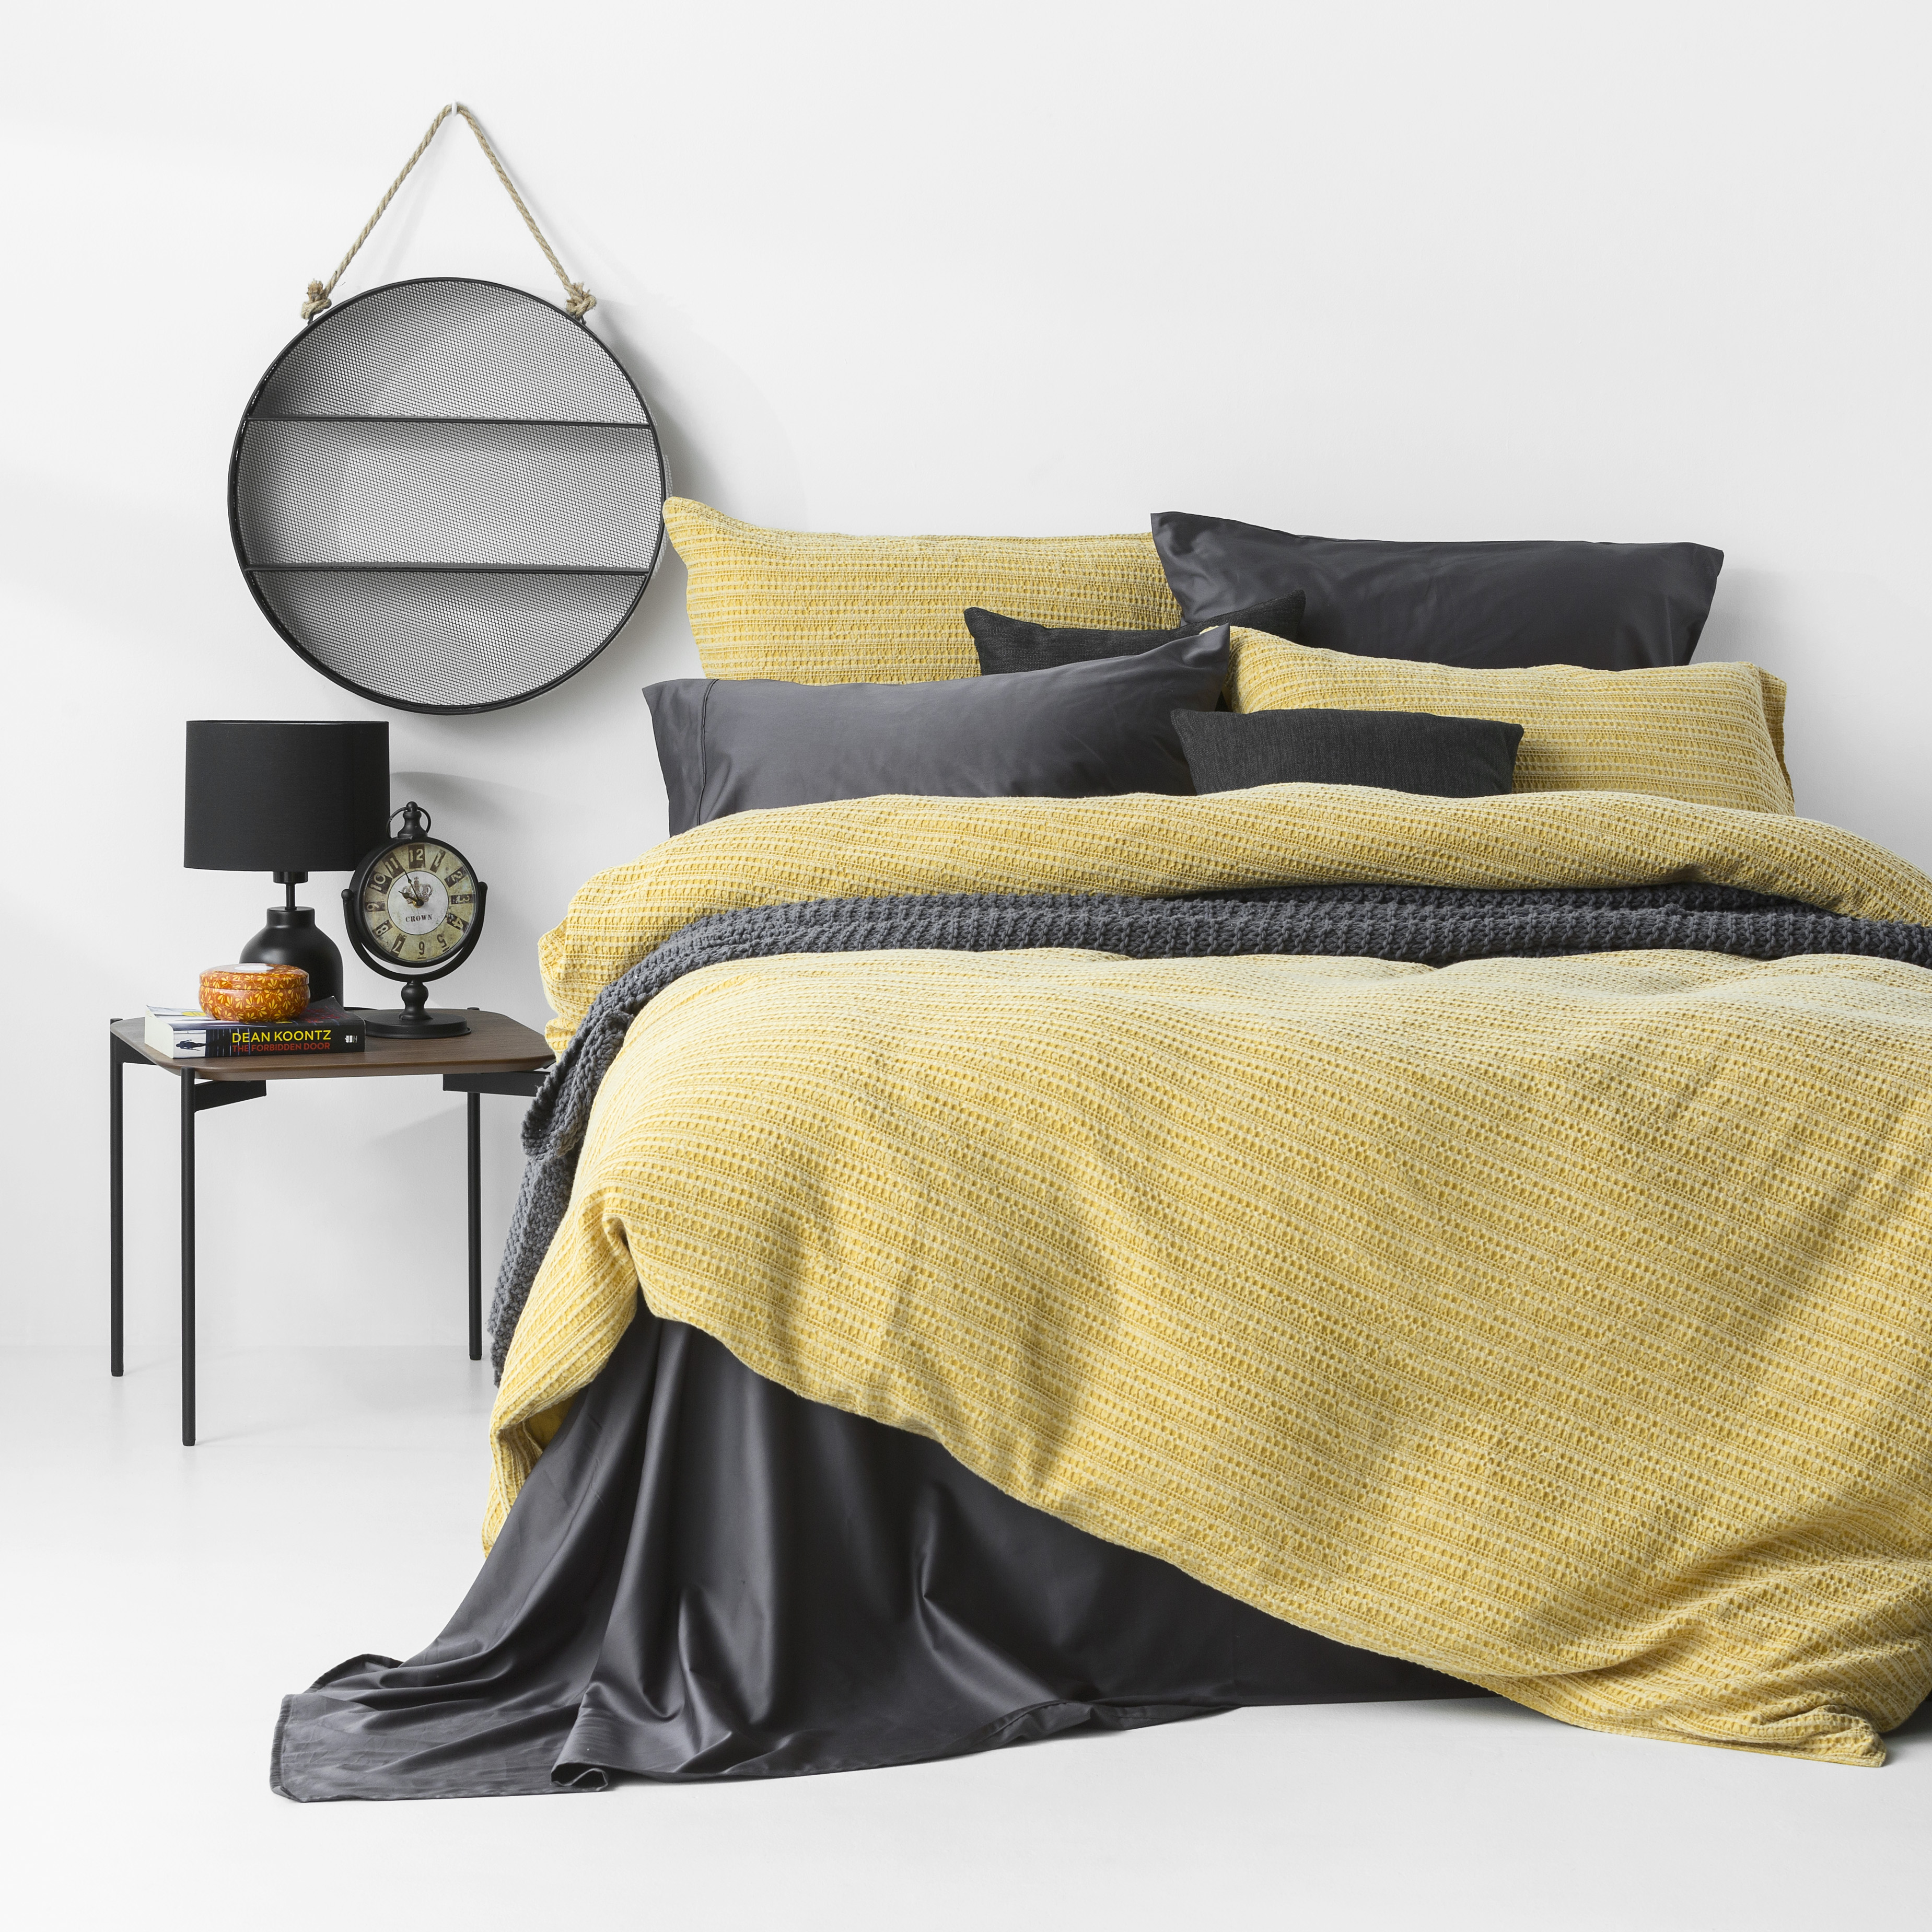 In2Linen Stone Washed Waffle Weave Pure Cotton Quilt Cover Set IMustard Yellow